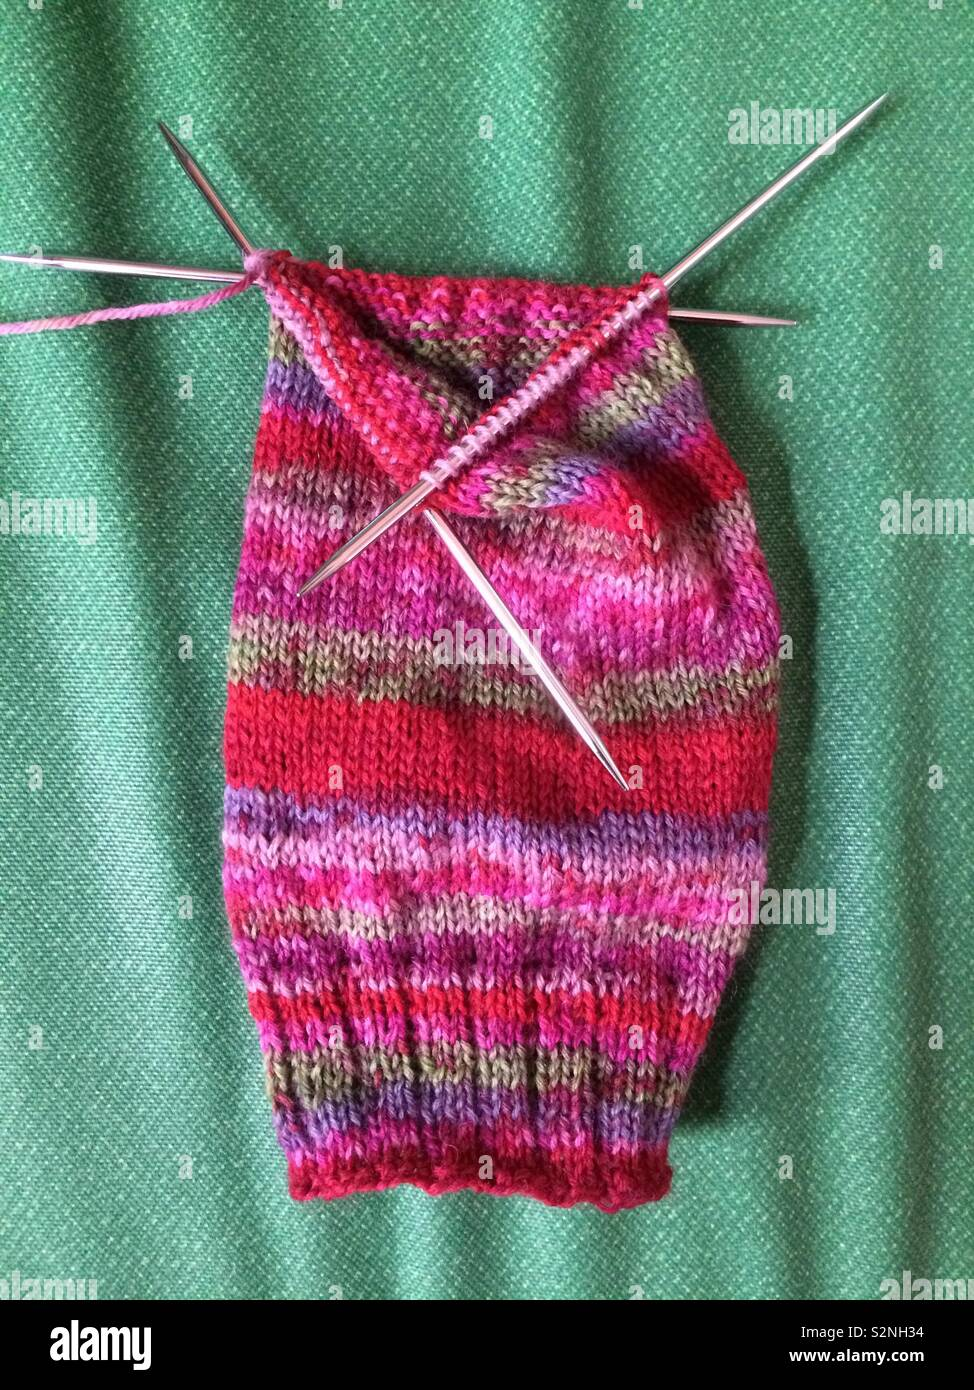 A Sock Or Sleeve Being Knitted In The Round On Double Pointed